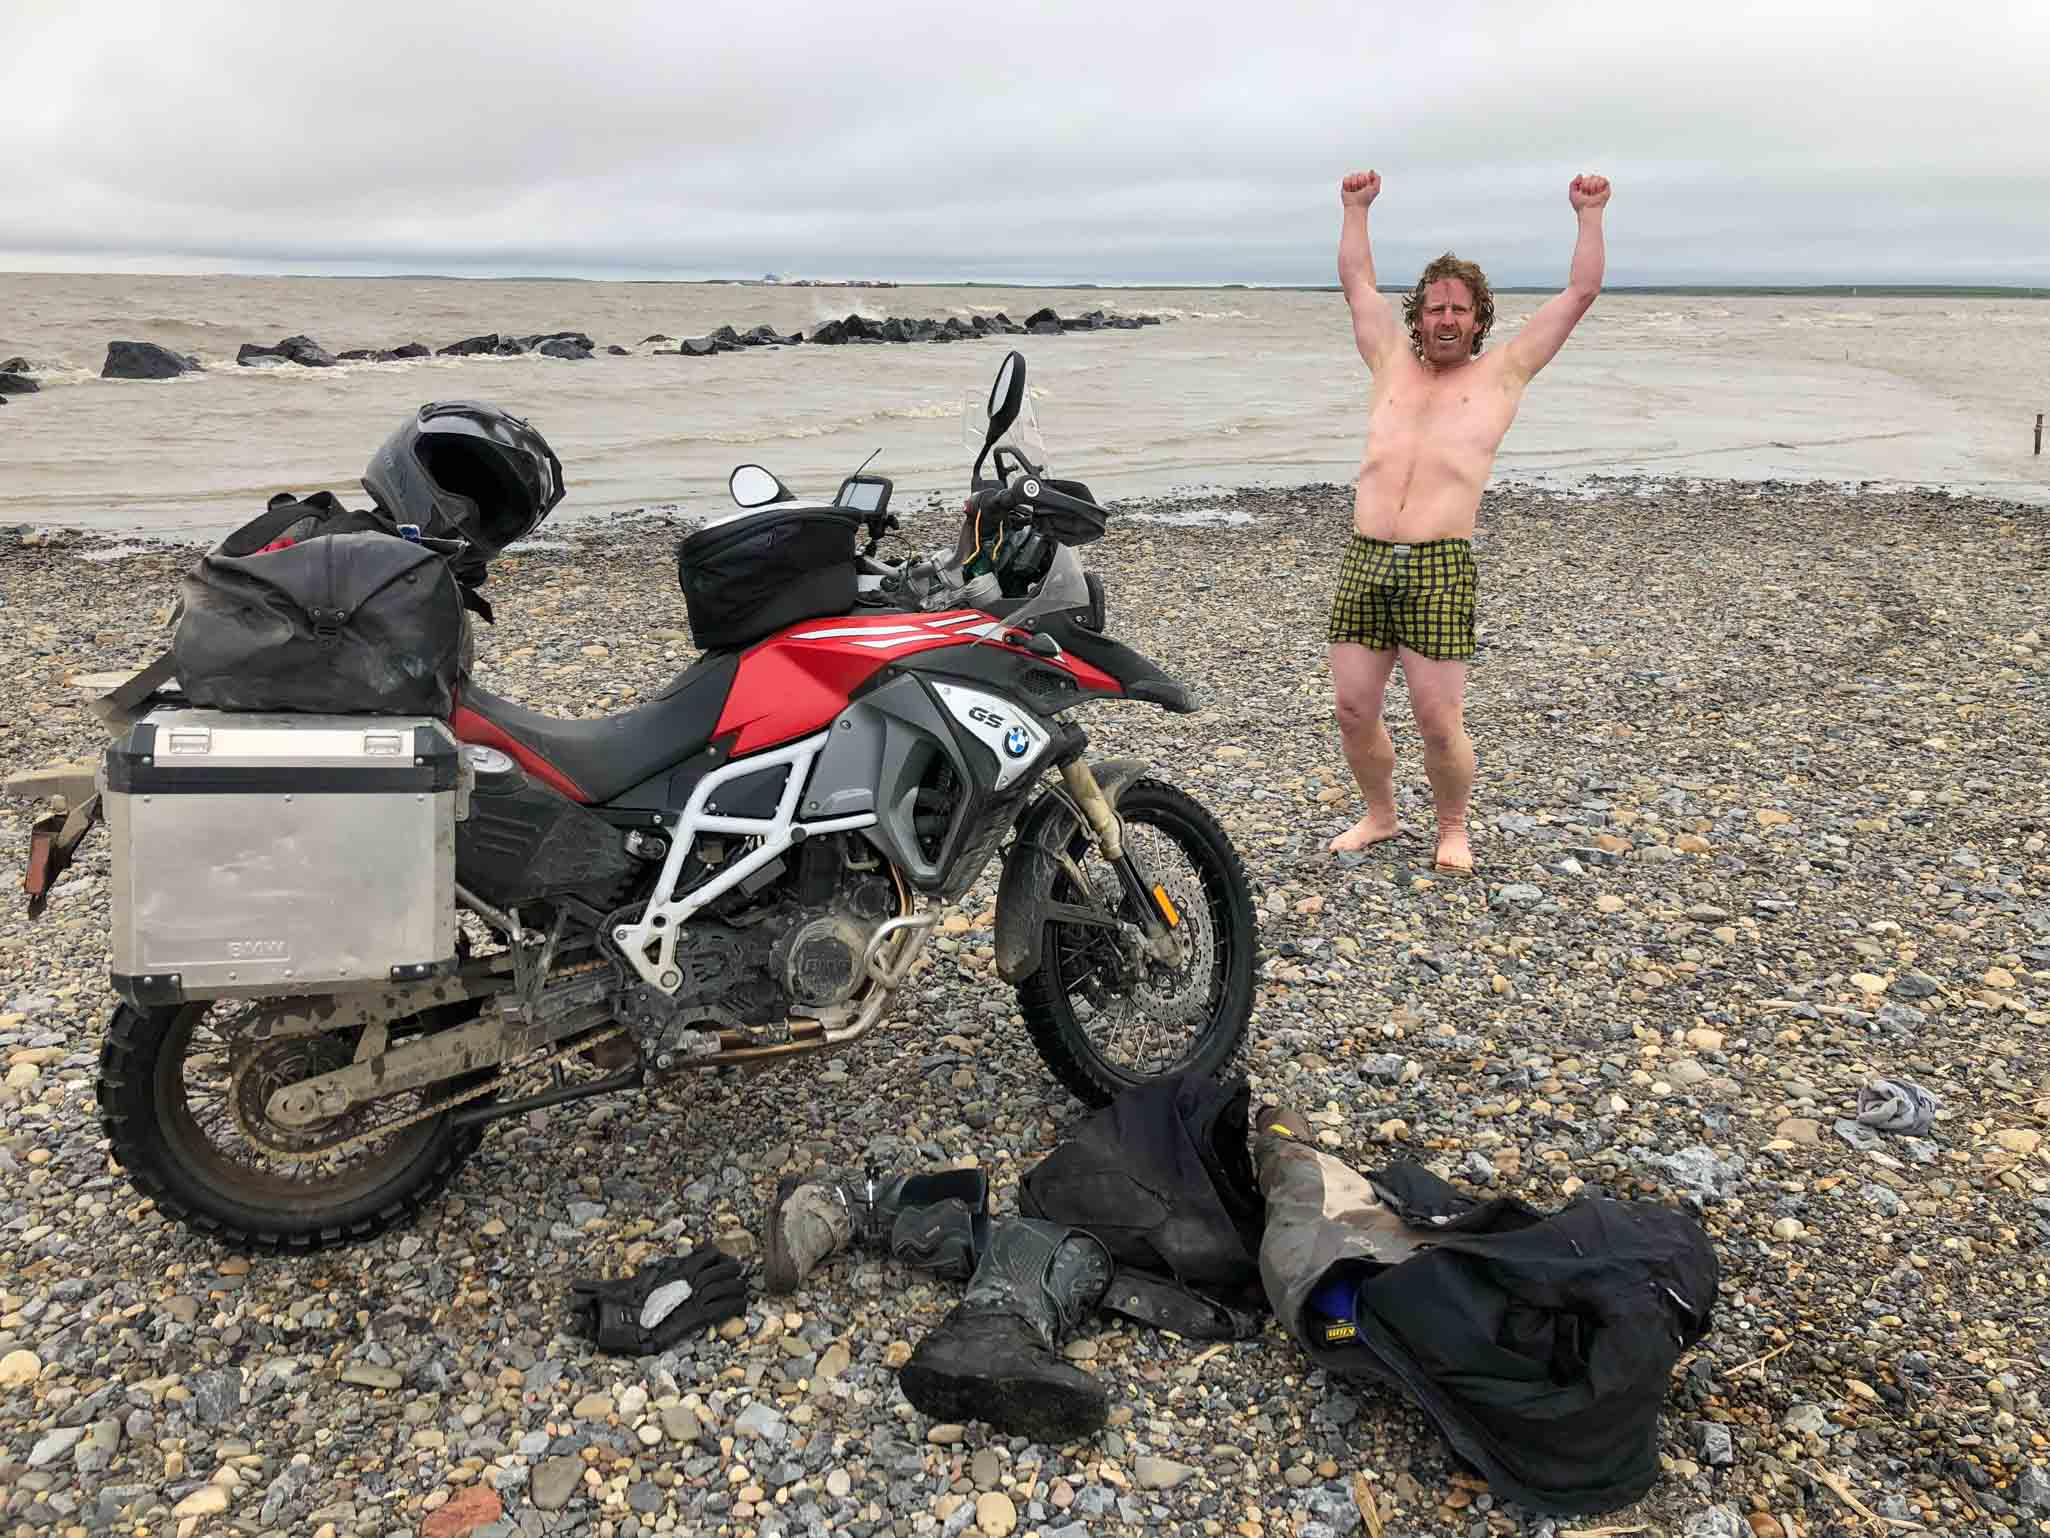 Mission accomplish, as with the HippoHips Turkana motorcycle adventure water and dustproof luggage they will carry gear to every corner of the globe